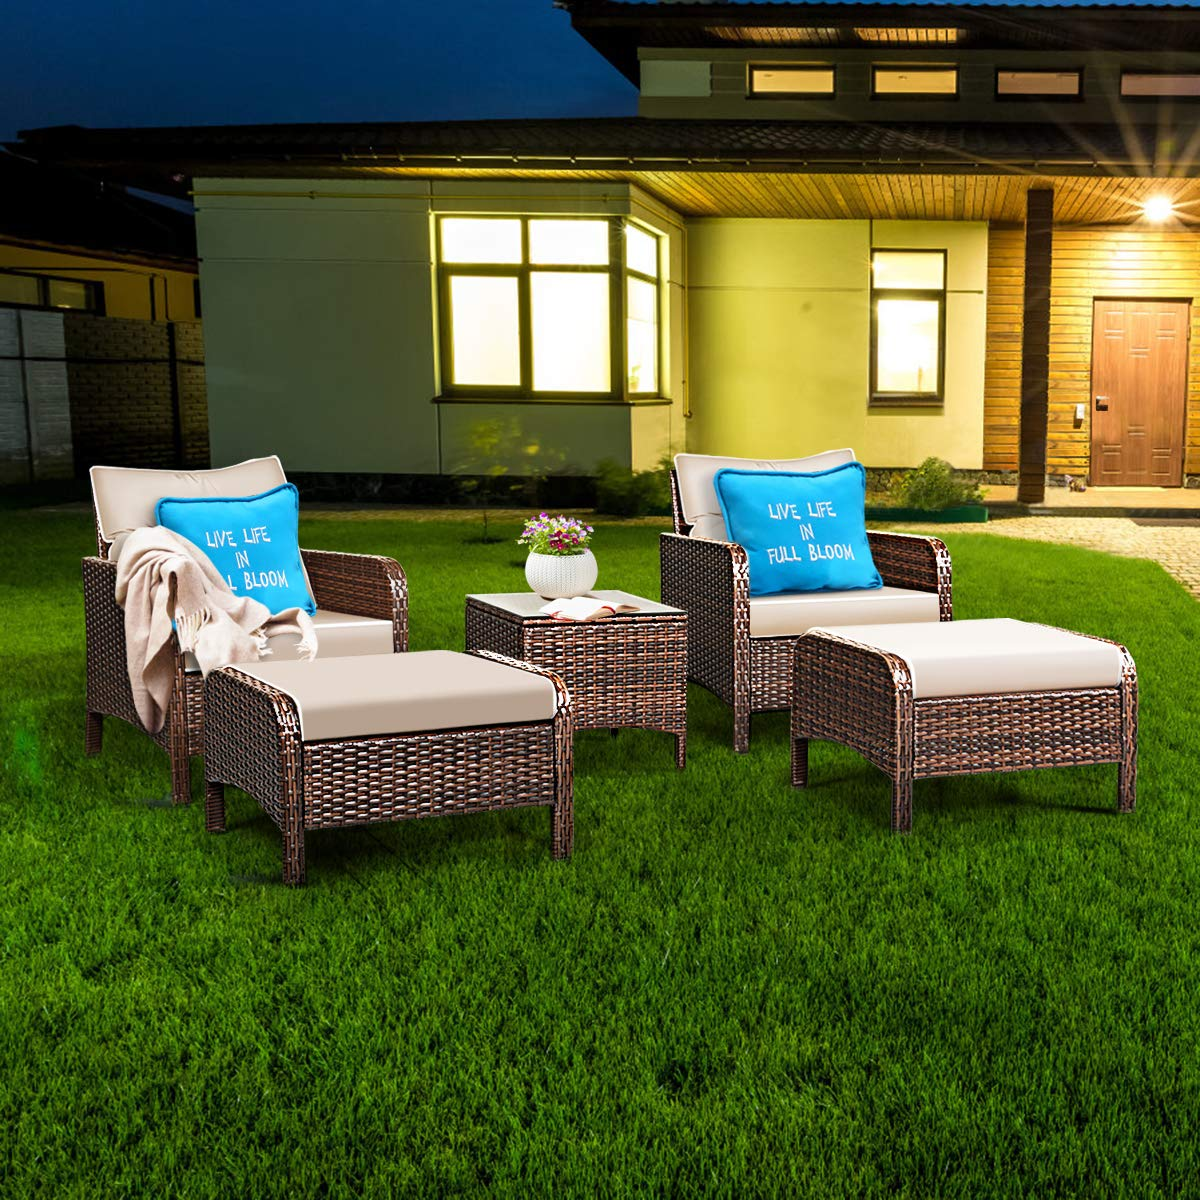 Tangkula Wicker Furniture Set 5 Pieces PE Wicker Rattan Outdoor All Weather Cushioned Sofas and Ottoman Set Lawn Pool Balcony Conversation Set Chat Set by Tangkula (Image #4)